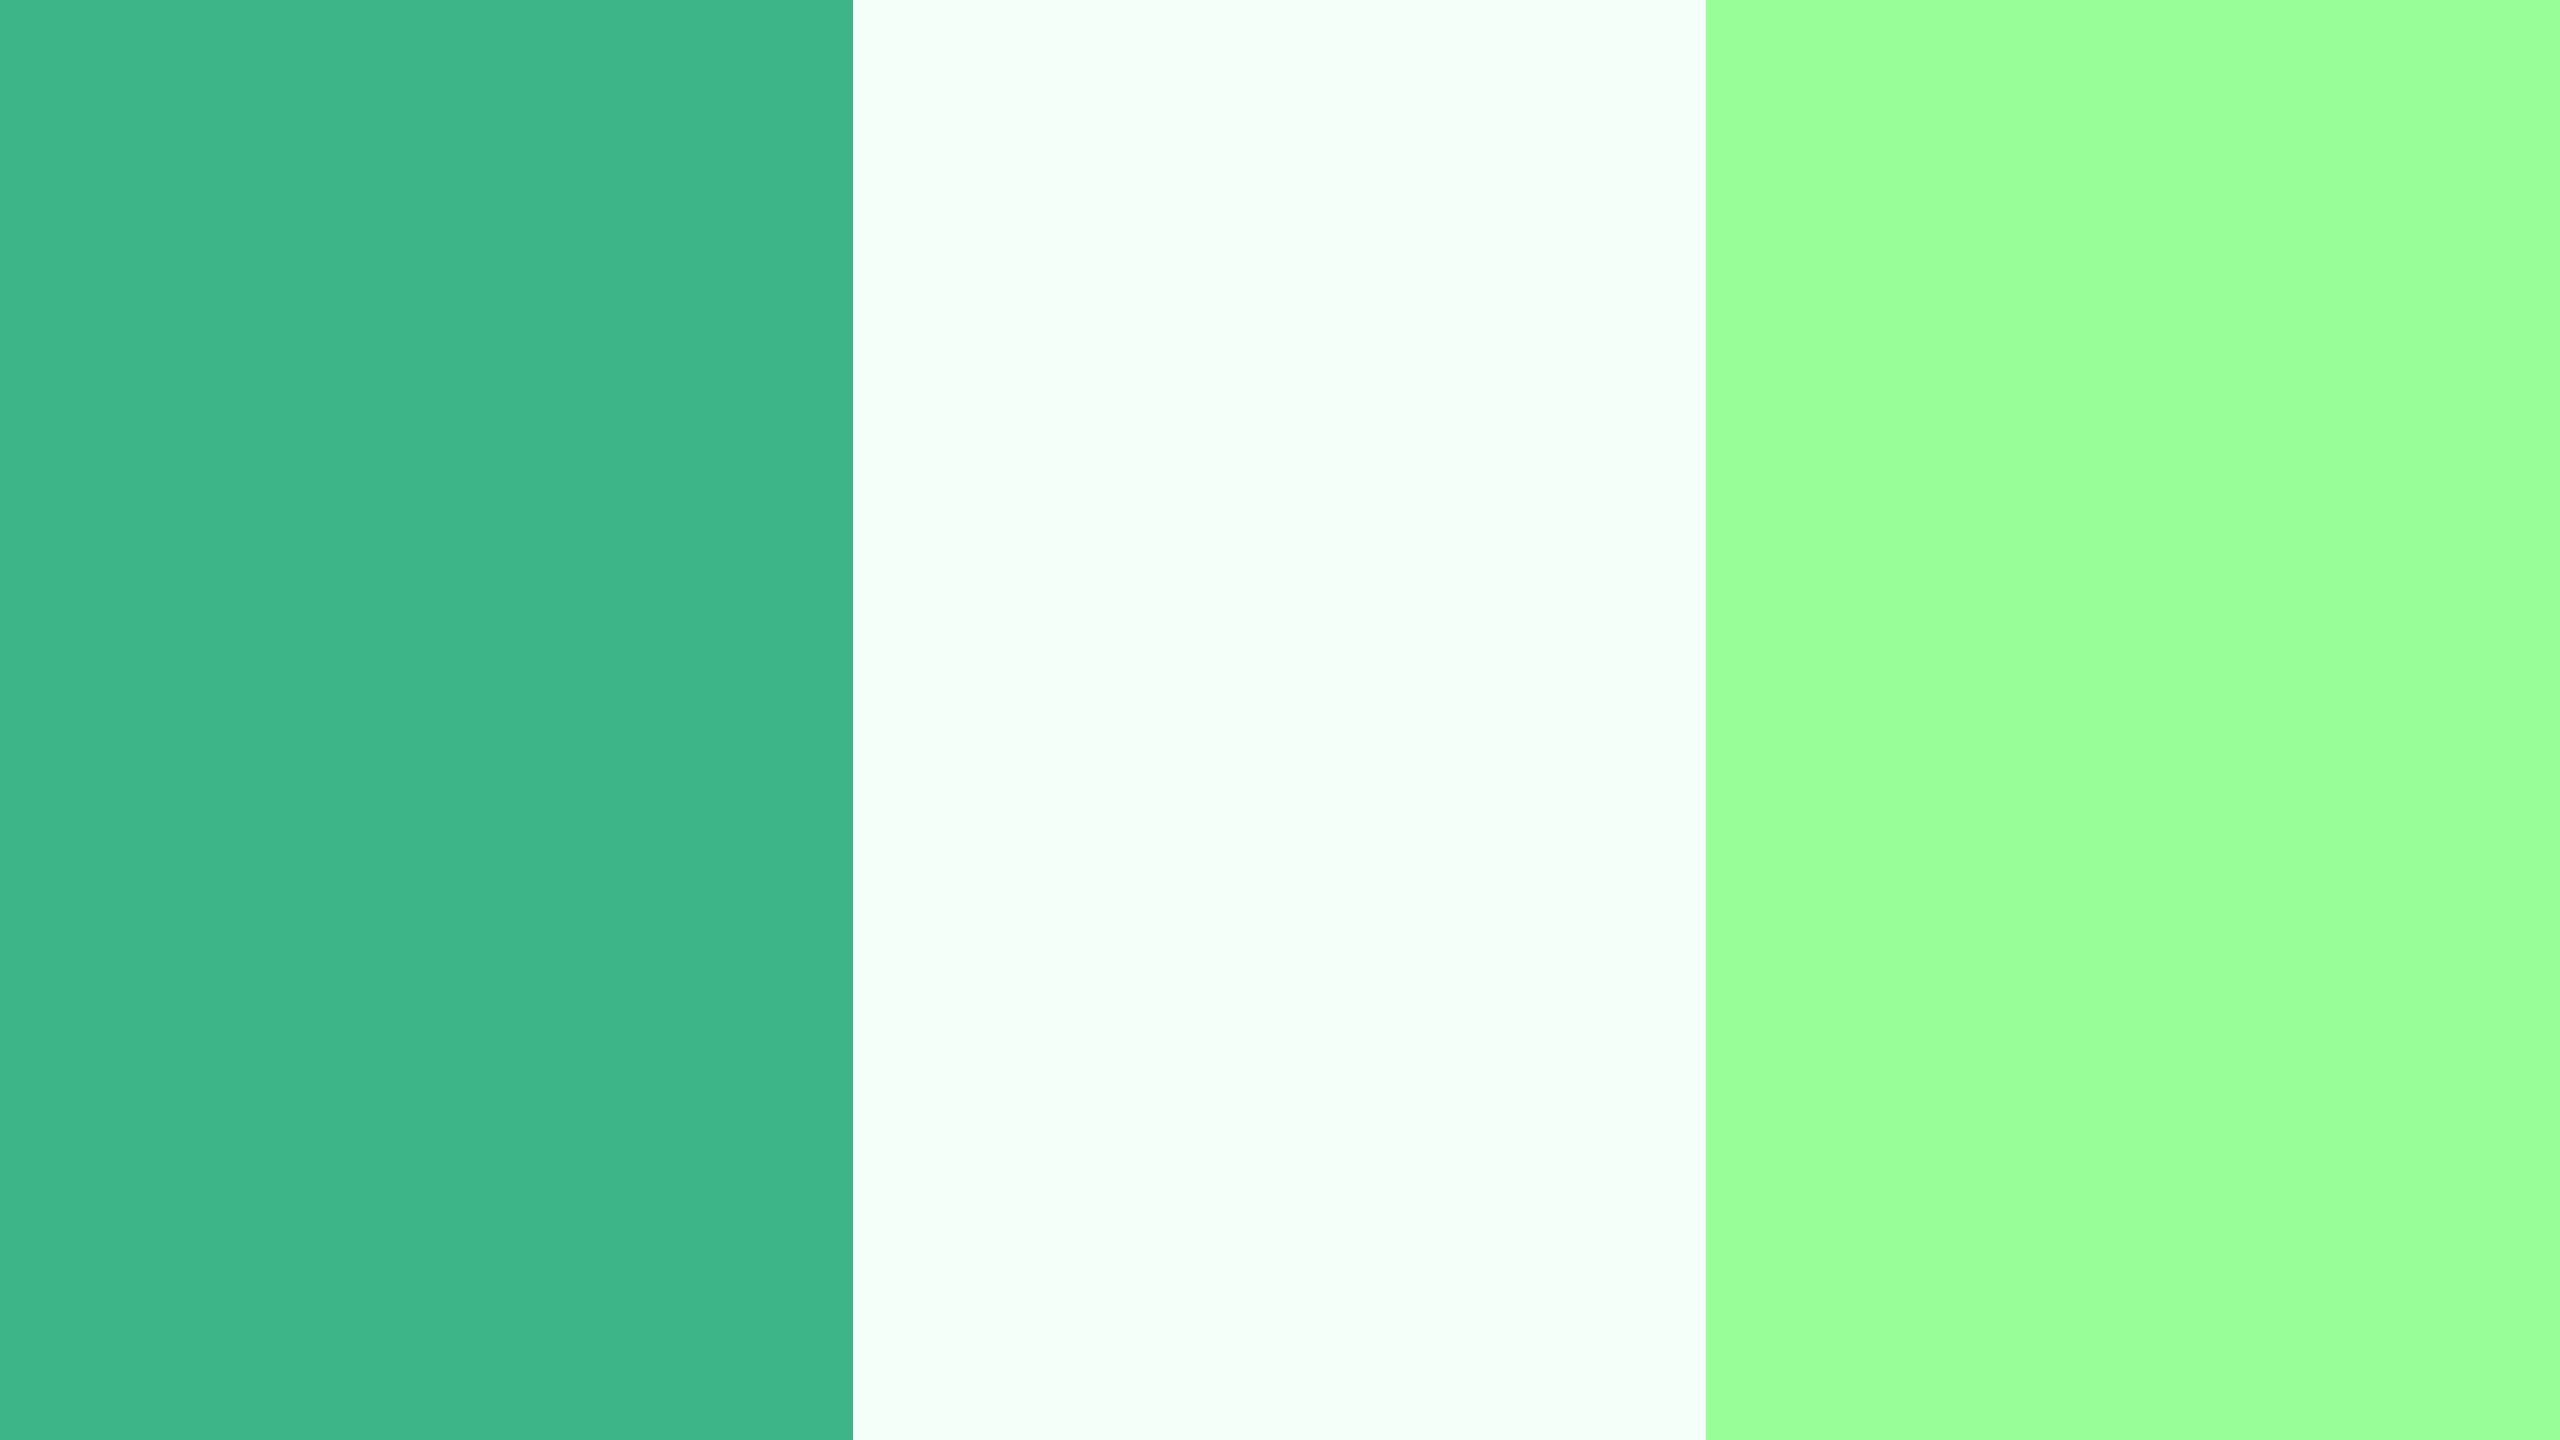 2560x1440 Mint Mint Cream and Mint Green Three Color Background 2560x1440